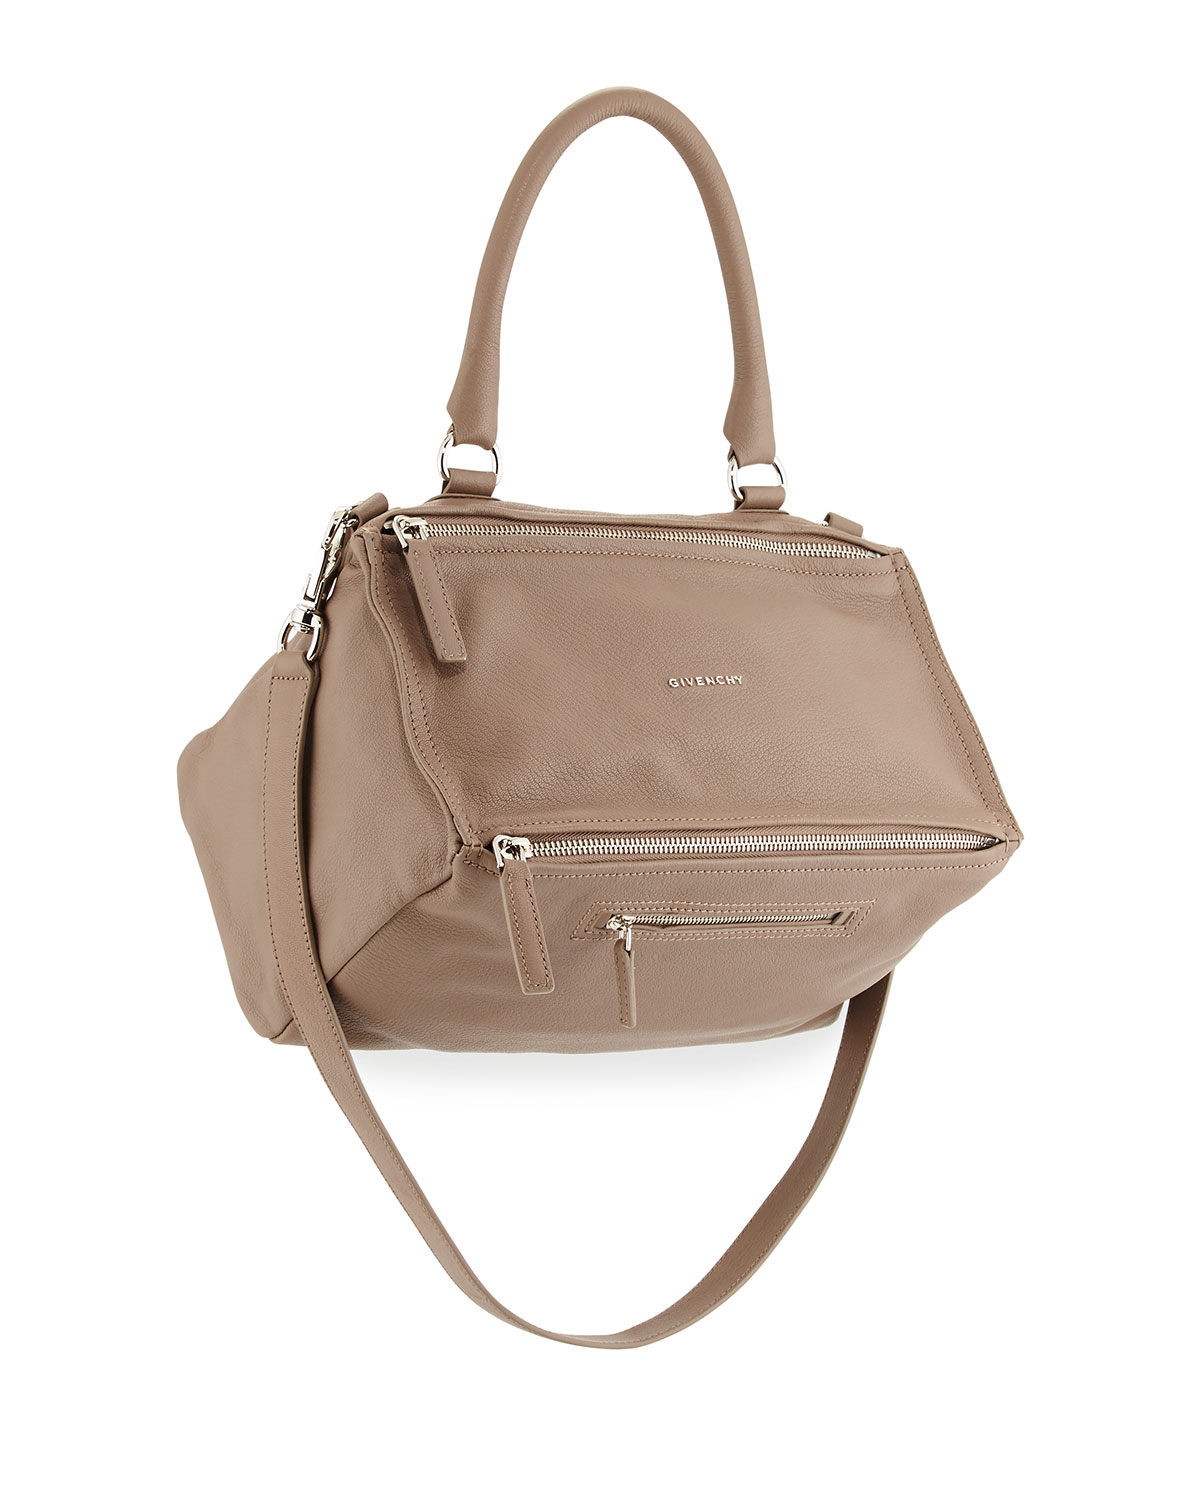 c94216899d6 Givenchy Pandora Medium Leather Satchel Bag, Sand | Neiman Marcus